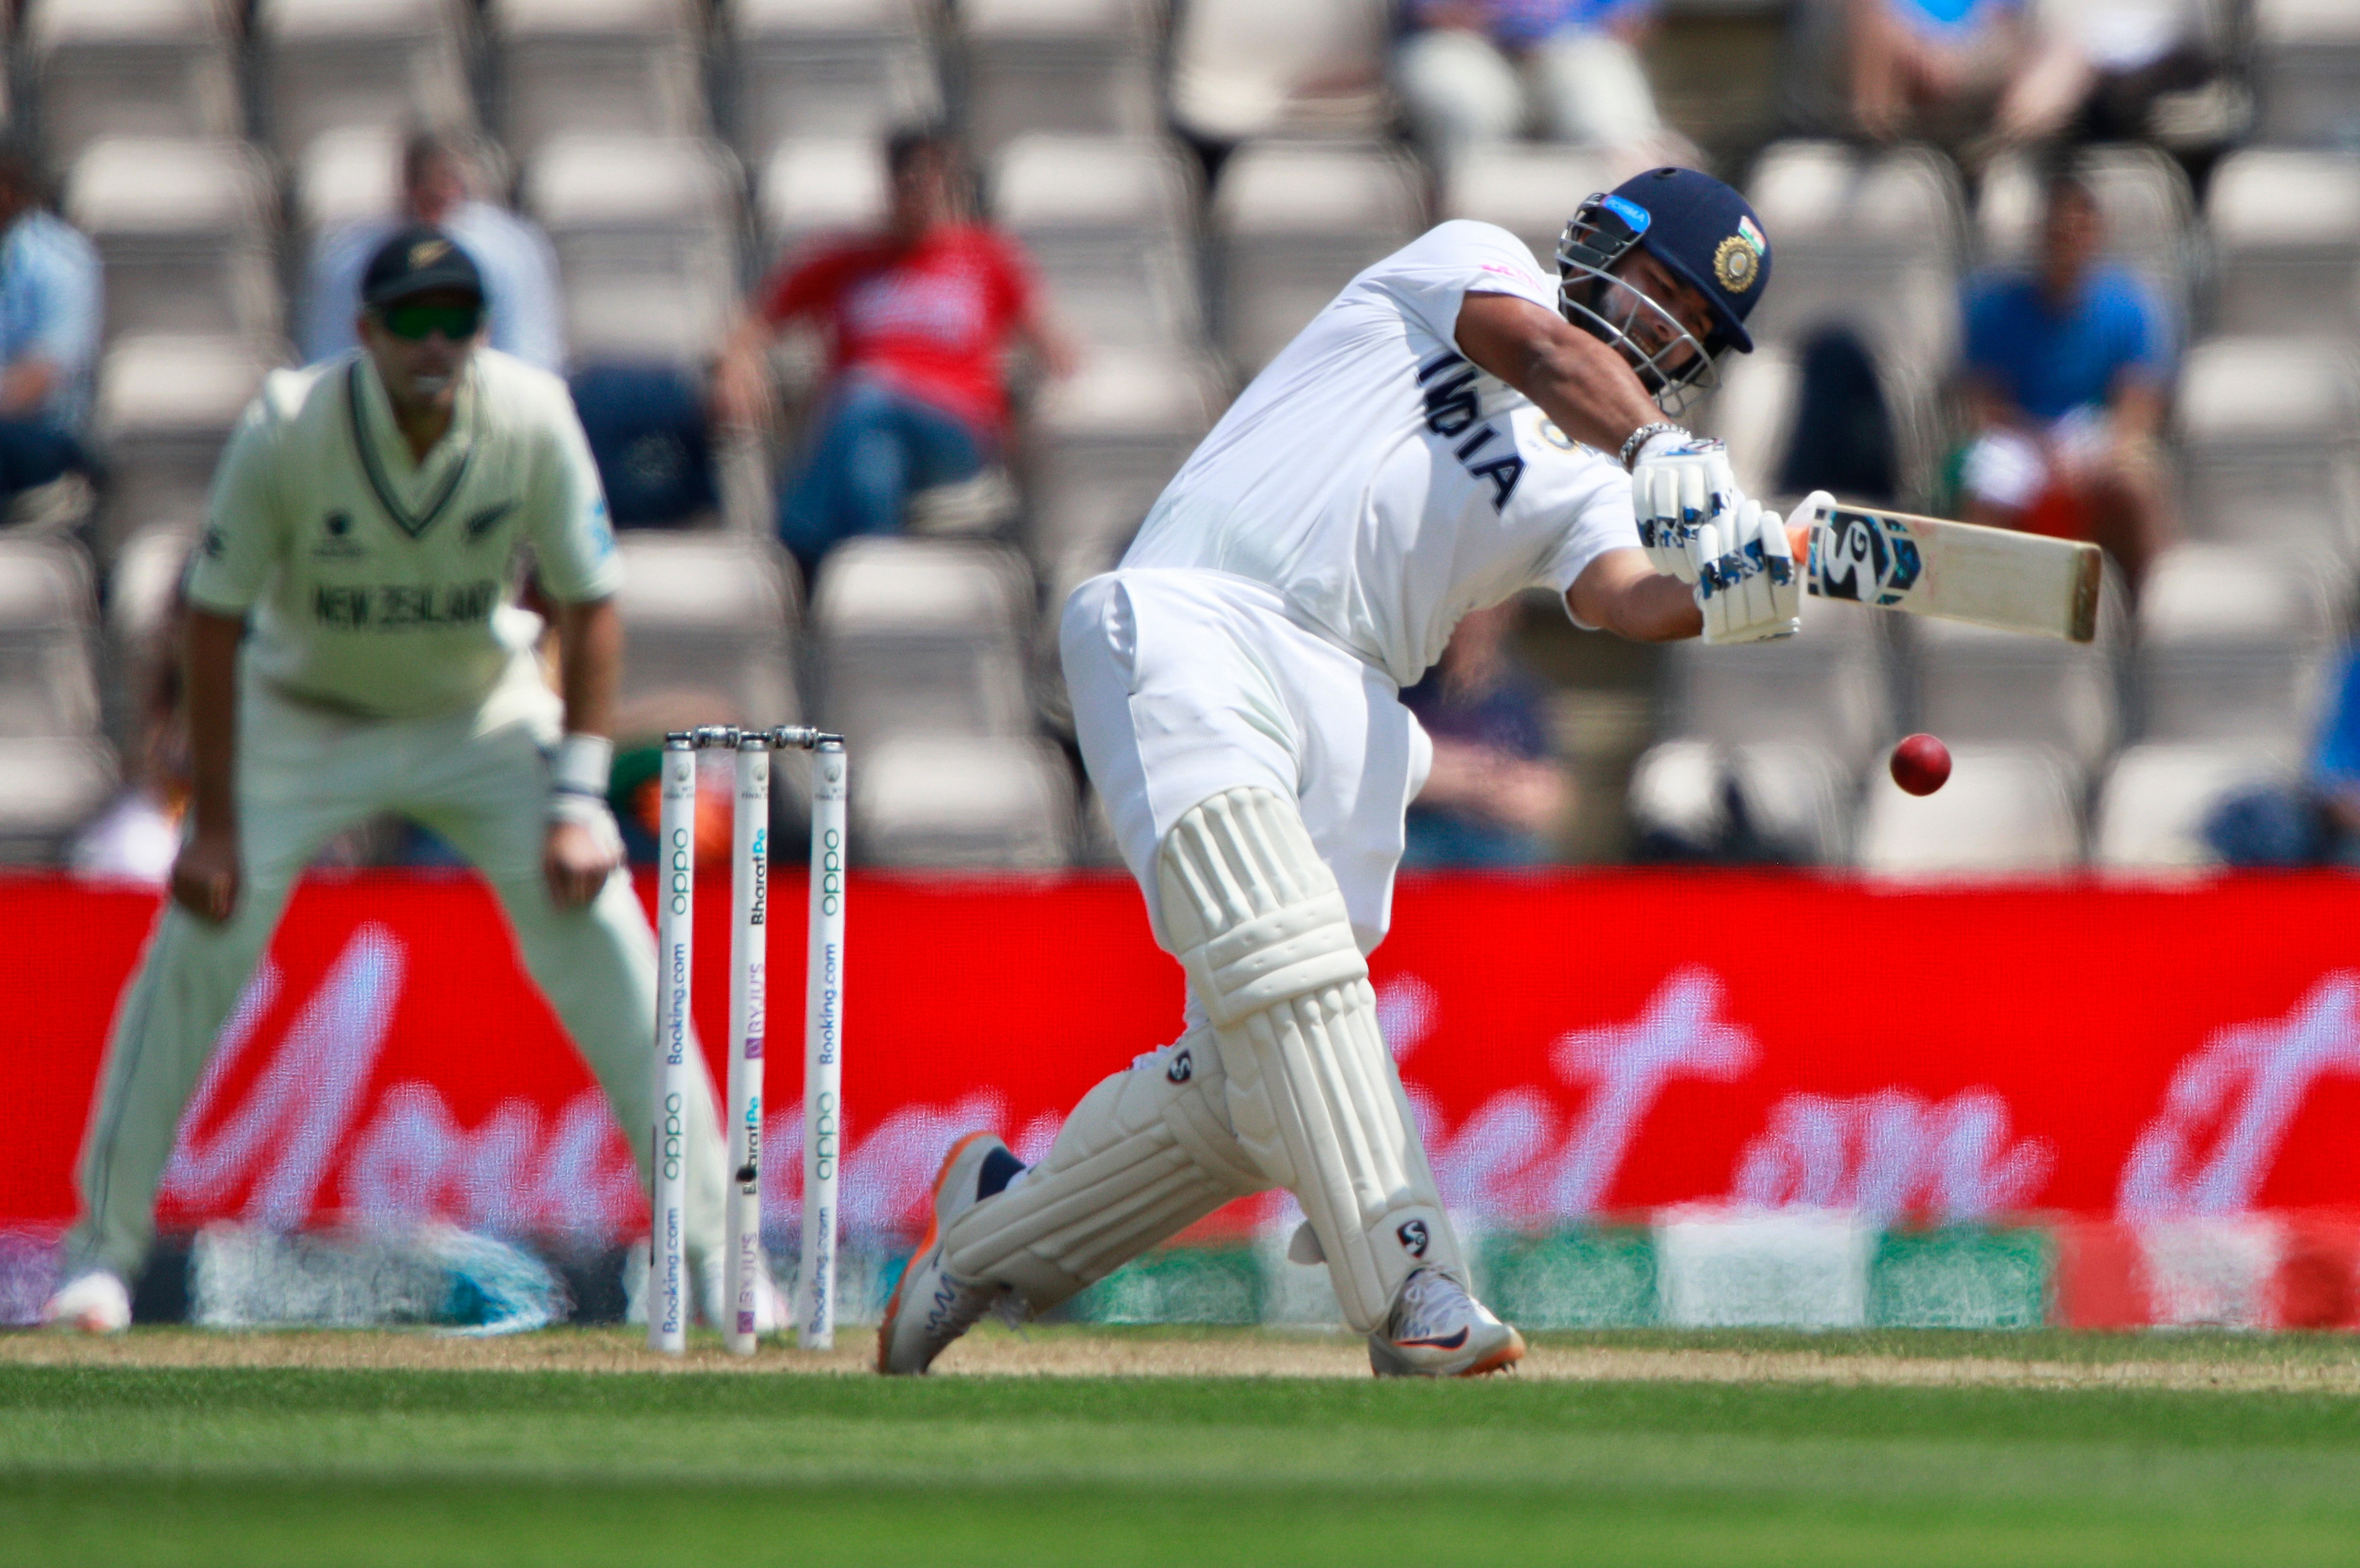 Rishabh Pant plays a shot during the sixth day of the World Test Championship final cricket match between New Zealand and India.(AP)